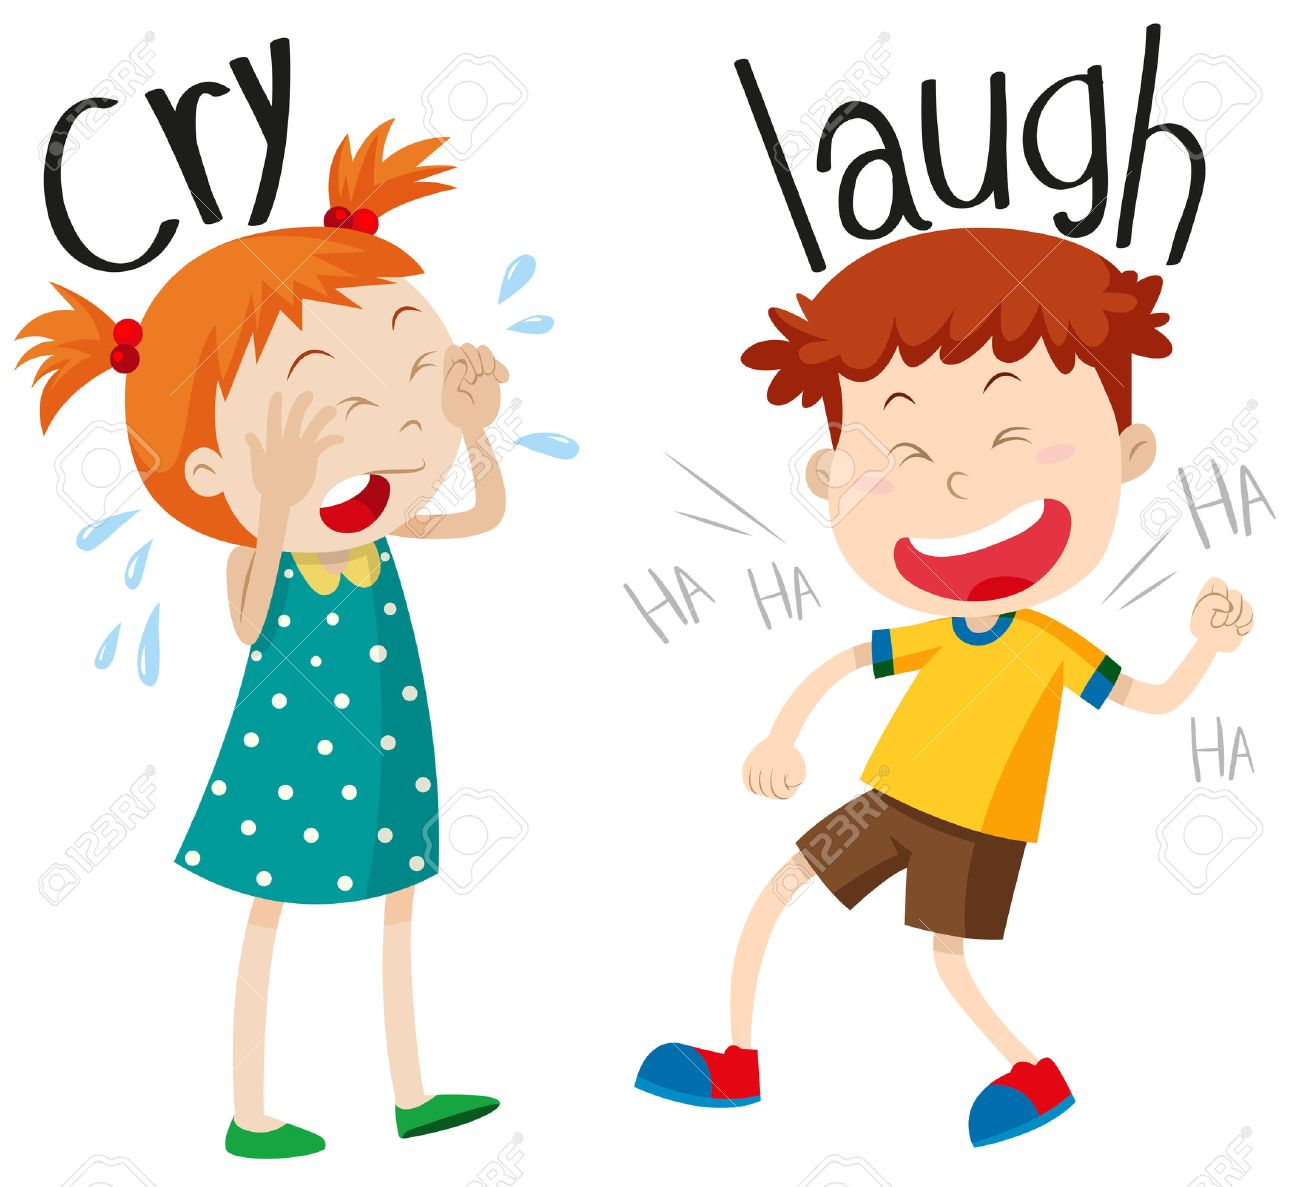 1300x1187 Opposite Adjectives Cry And Laugh Illustration Royalty Free